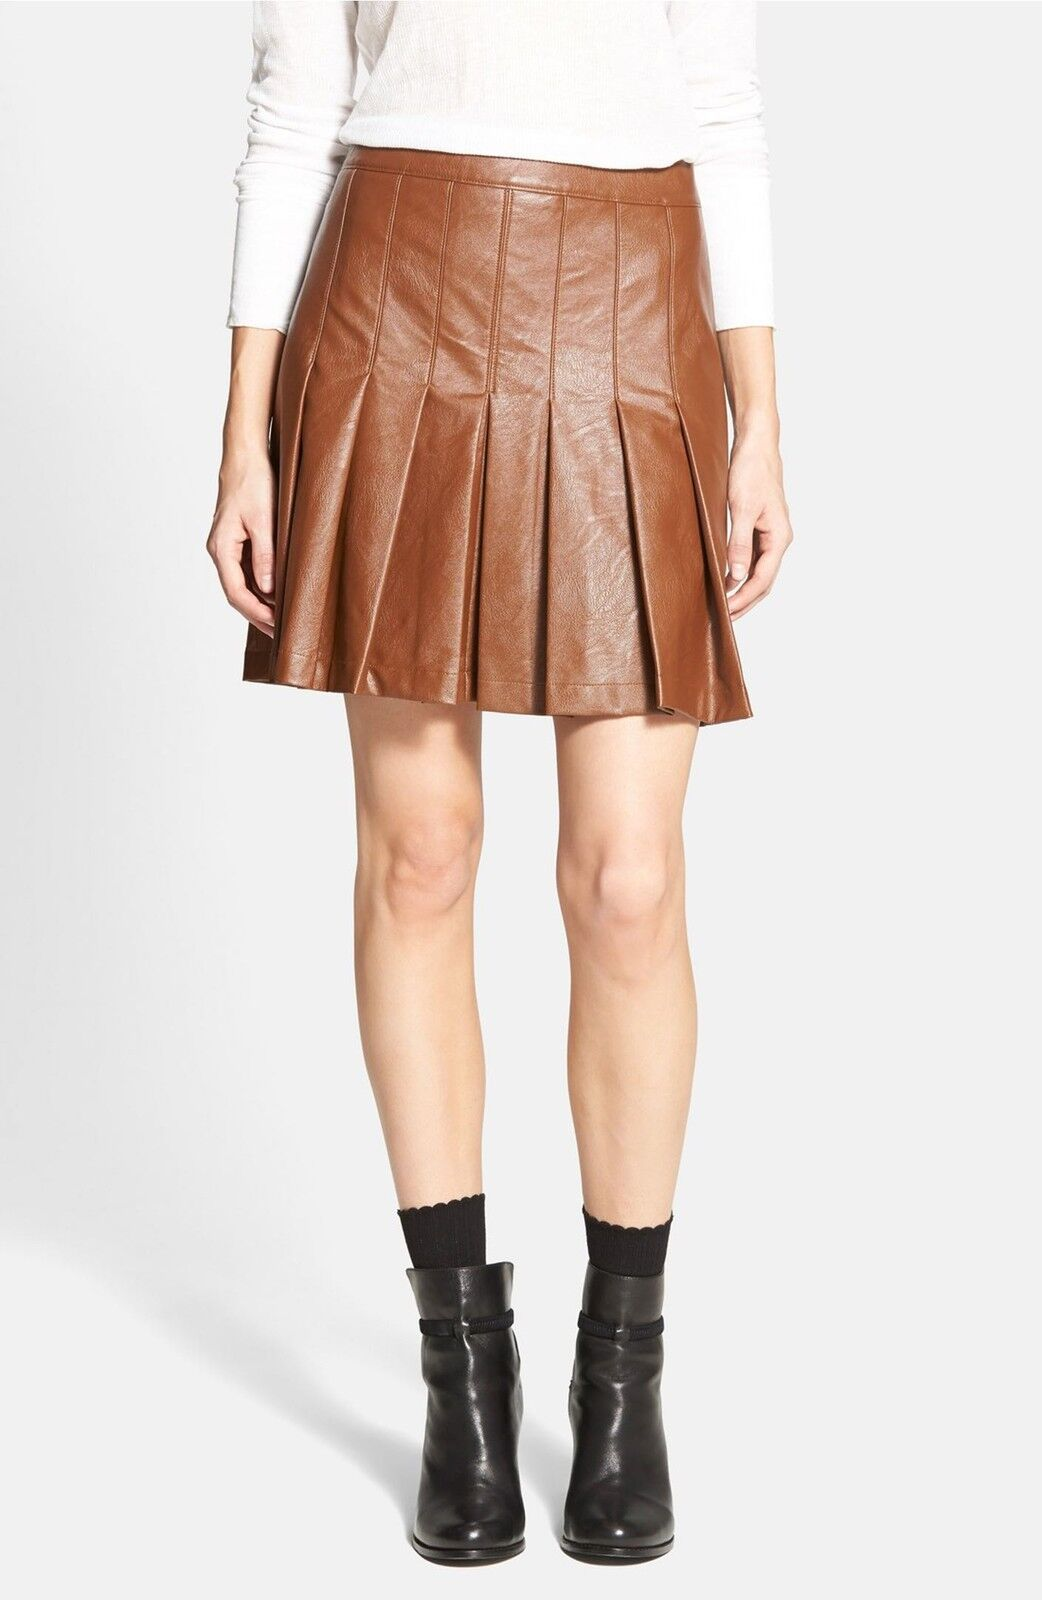 NWT   Ace Delivery Pleated Faux Leather Skirt   SZ M   A065